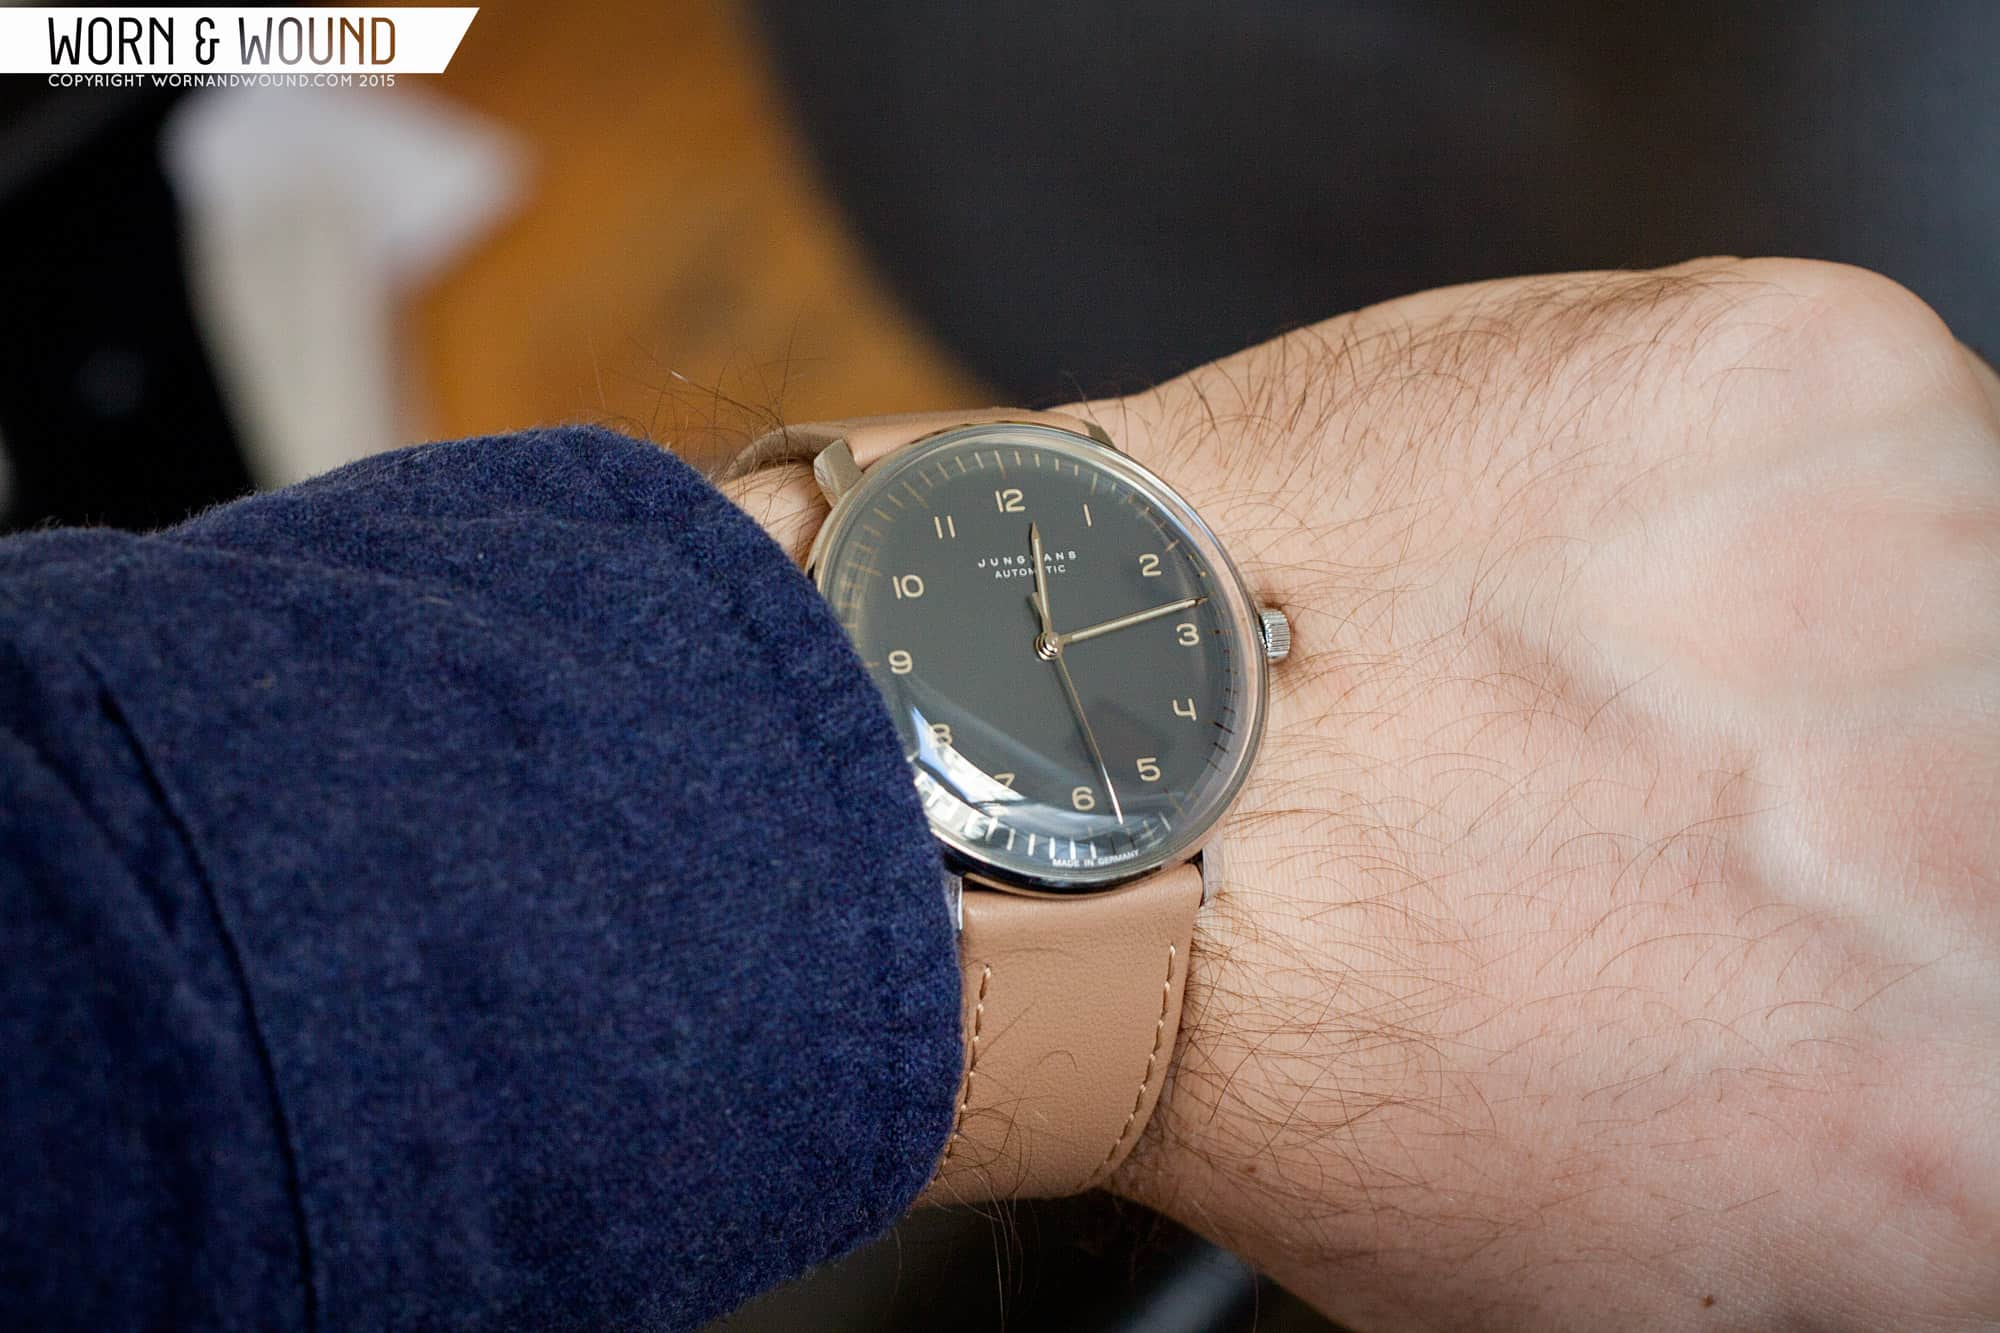 Max Bill Automatic Junghans Max Bill Anthracite Ref 3401 Review Worn Wound